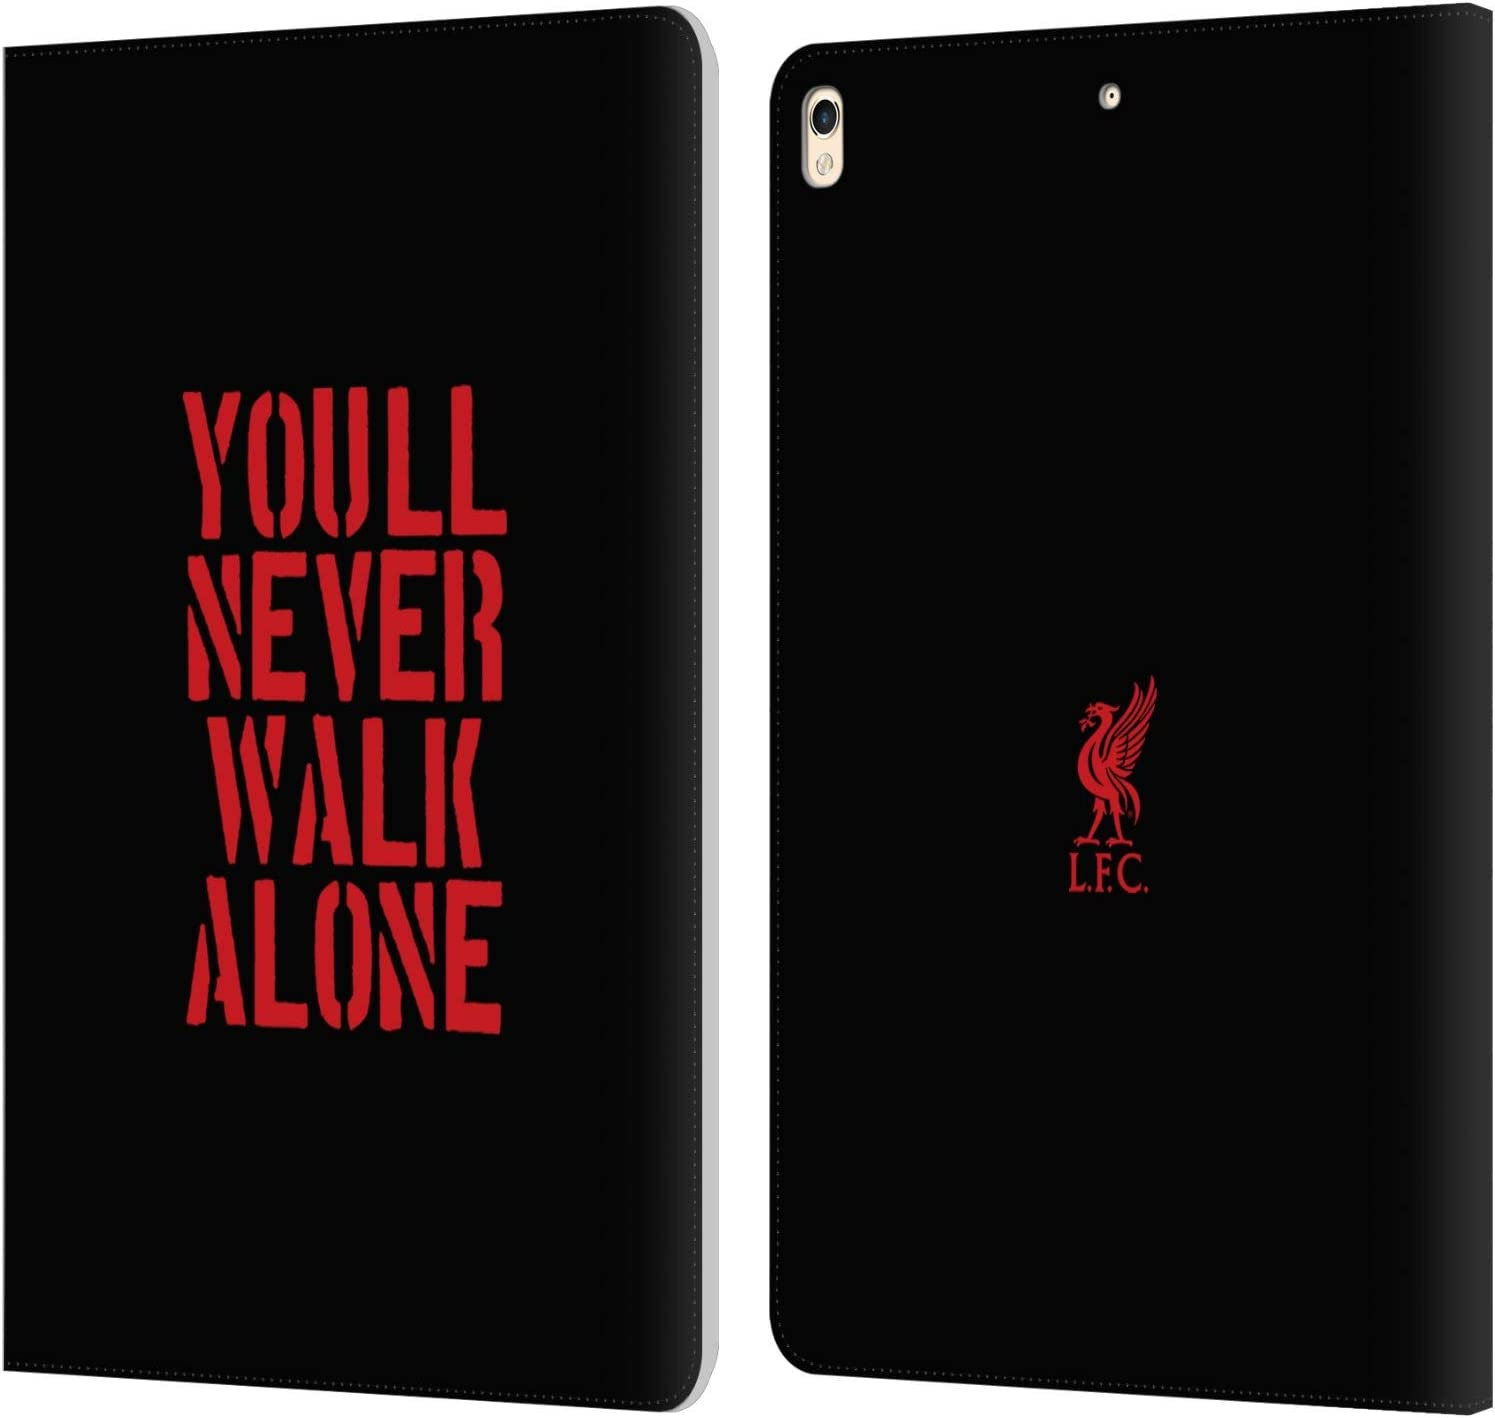 Head Case Designs Officially Licensed Liverpool Football Club Stencil Black Liver Bird YNWA PU Leather Book Wallet Case Cover Compatible with Apple iPad Pro 10.5 (2017)